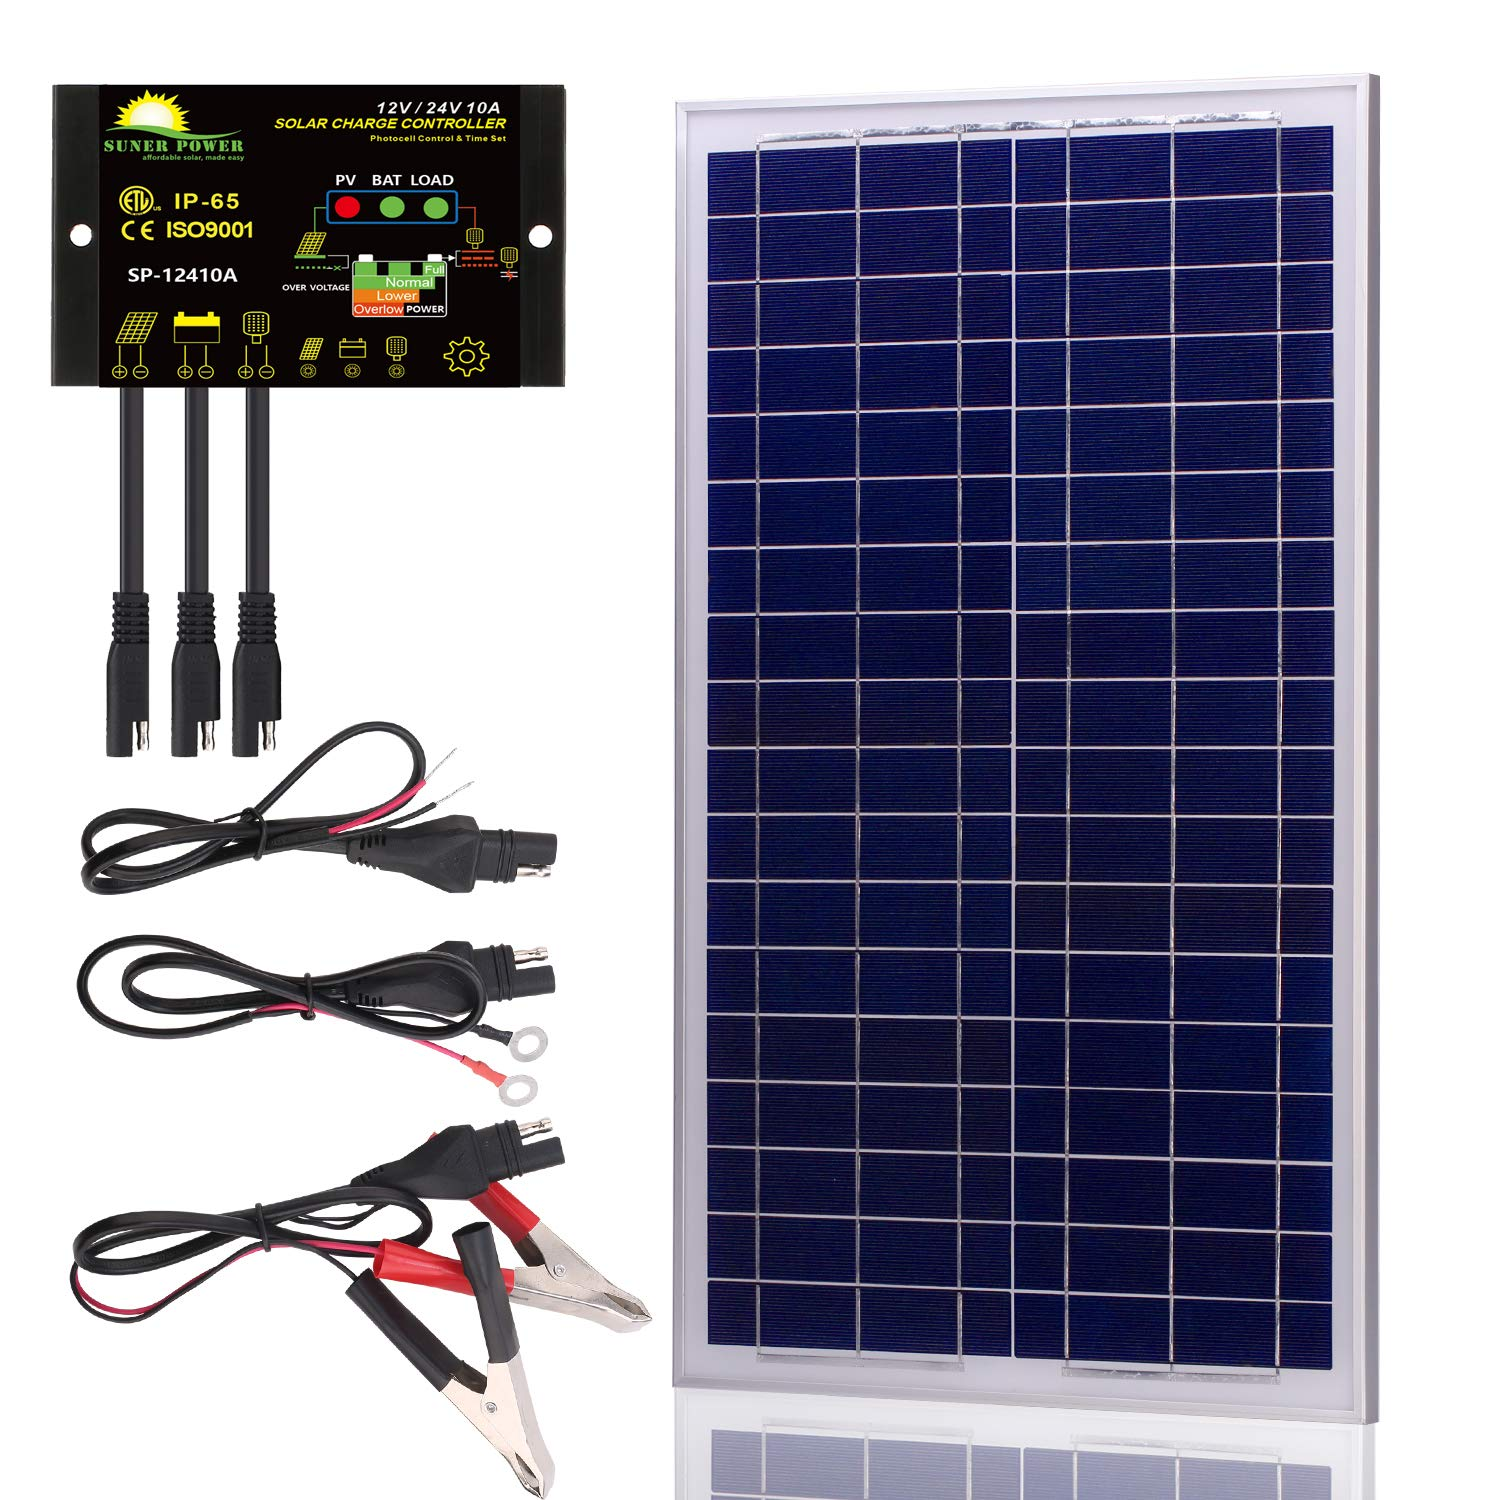 SUNER POWER 30 Watts 12V Off Grid Solar Panel Kit - Waterproof 30W Solar Panel + Photocell 10A Solar Charge Controller with Work Time Setting + SAE Connection Cable Kits by SUNER POWER